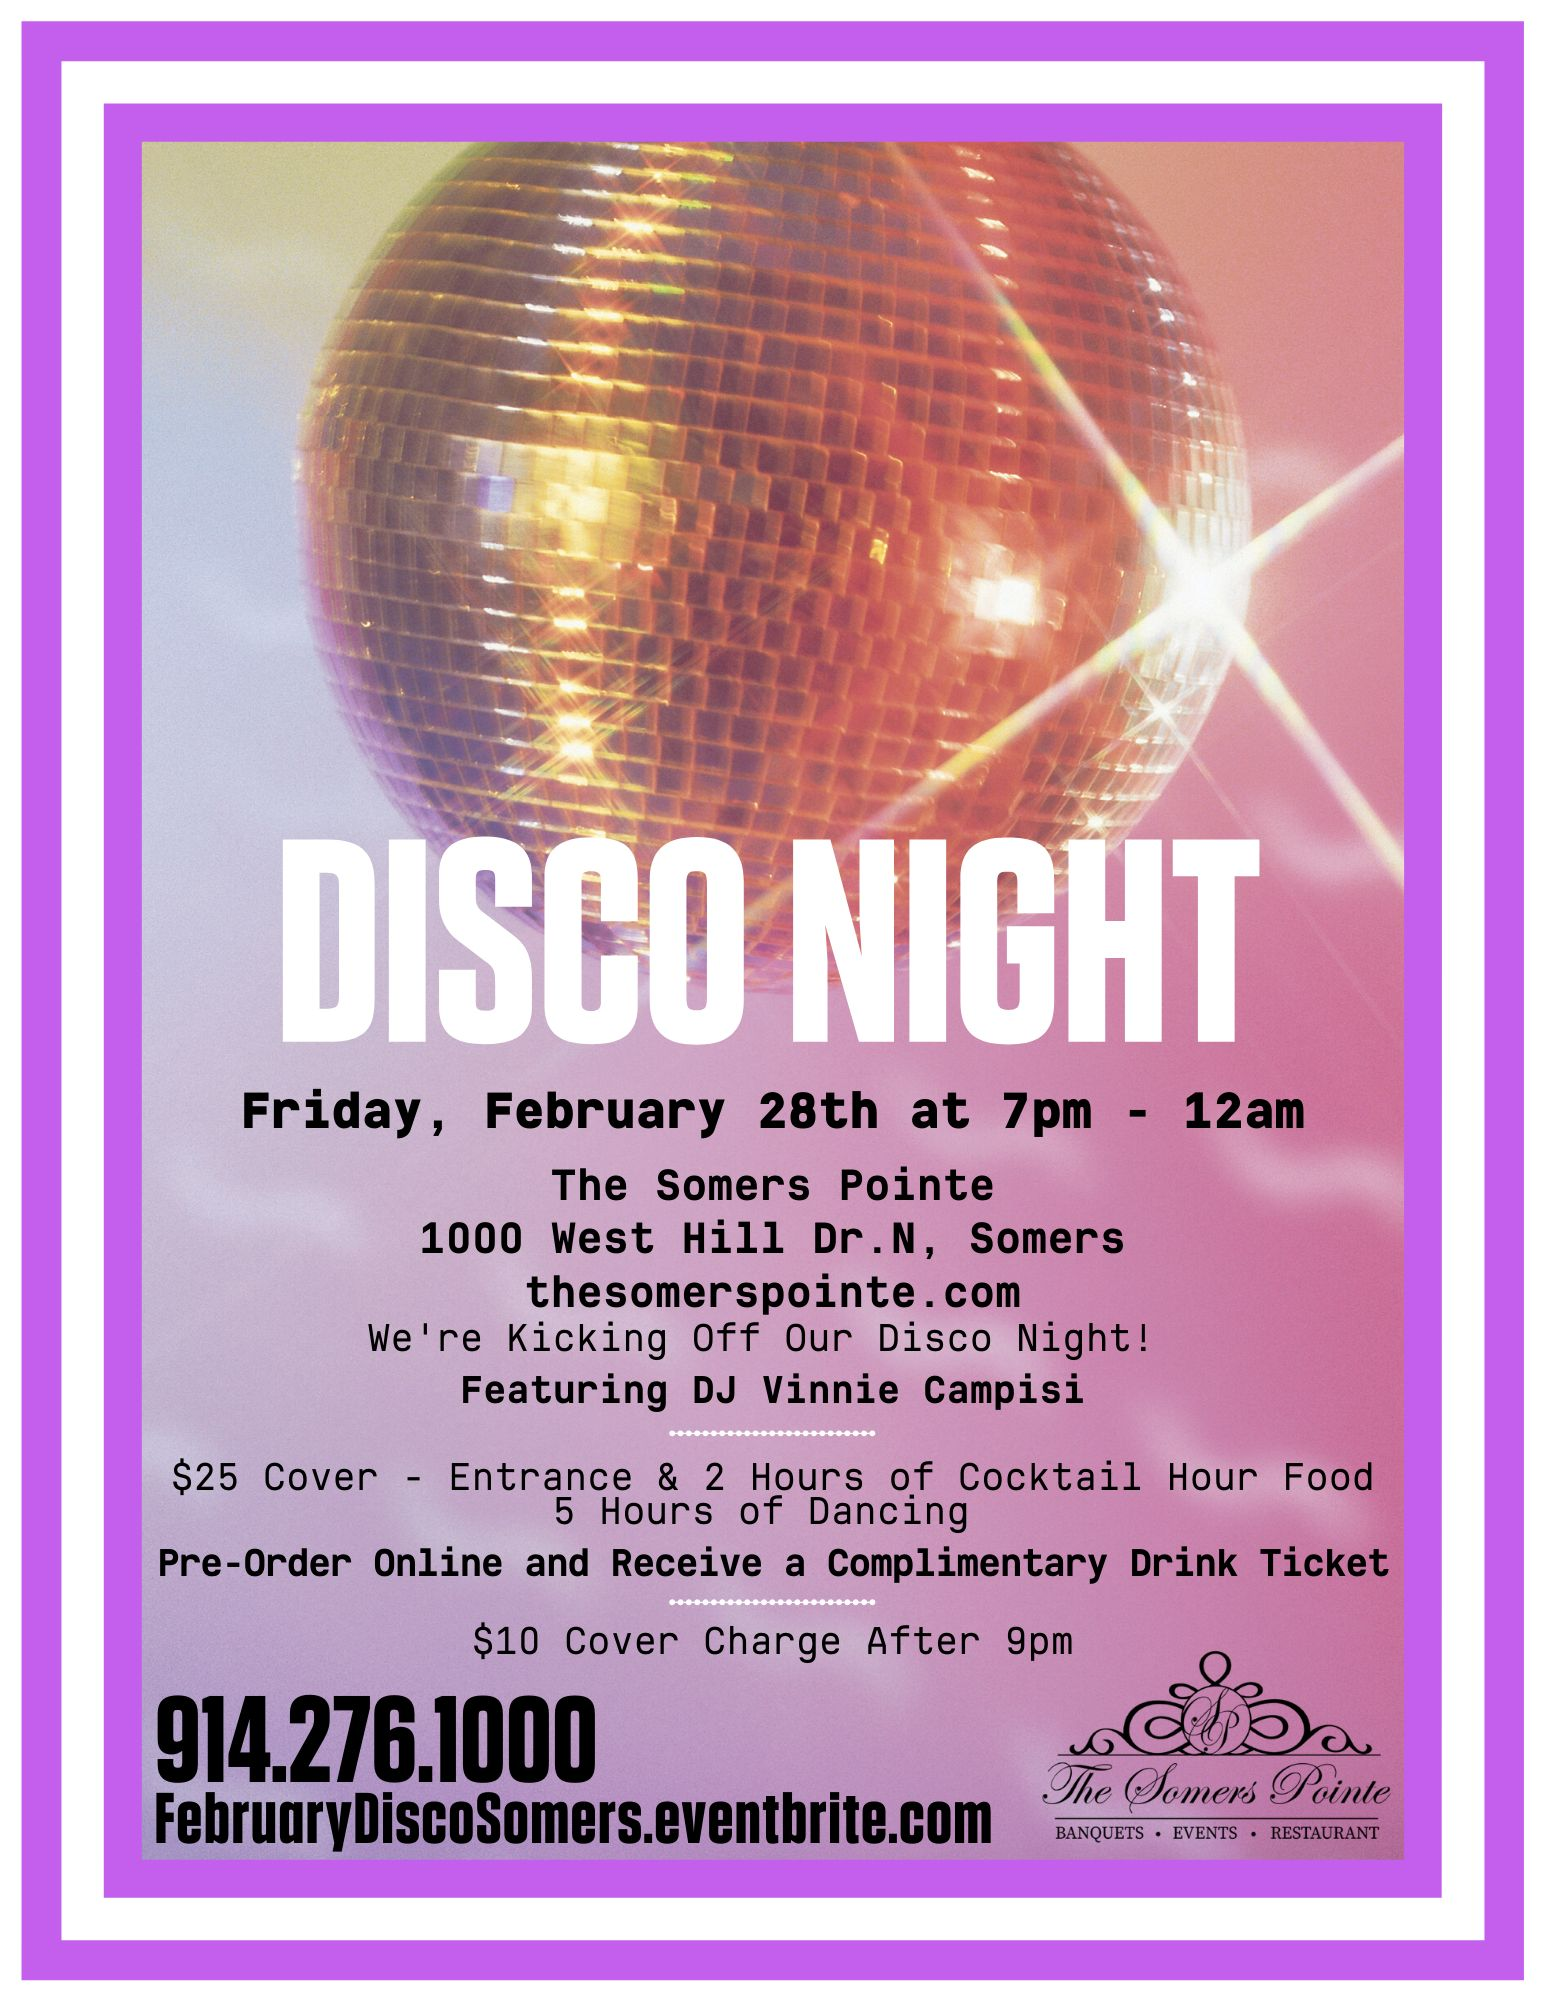 70s and 80s Disco Featuring DJ Vinnie Campisi Event Details at The Somers Pointe & The Grille at Somers Pointe